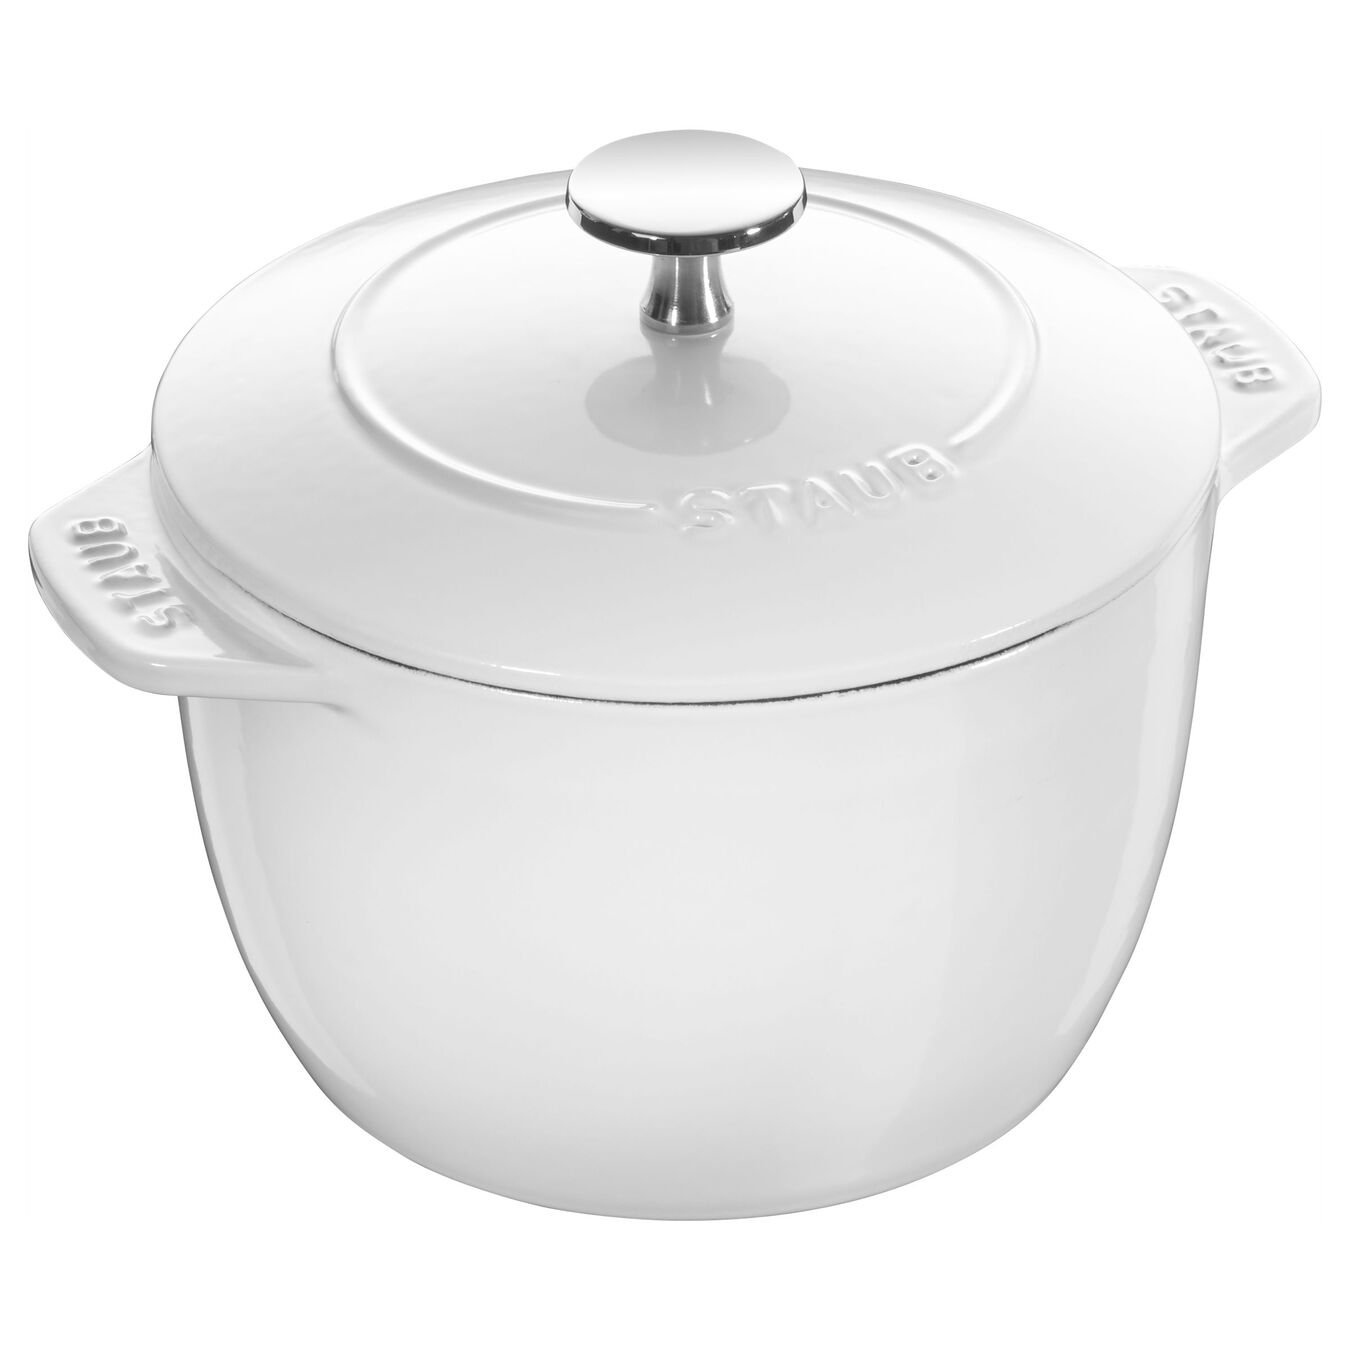 1.5 qt, Petite French Oven, white,,large 1